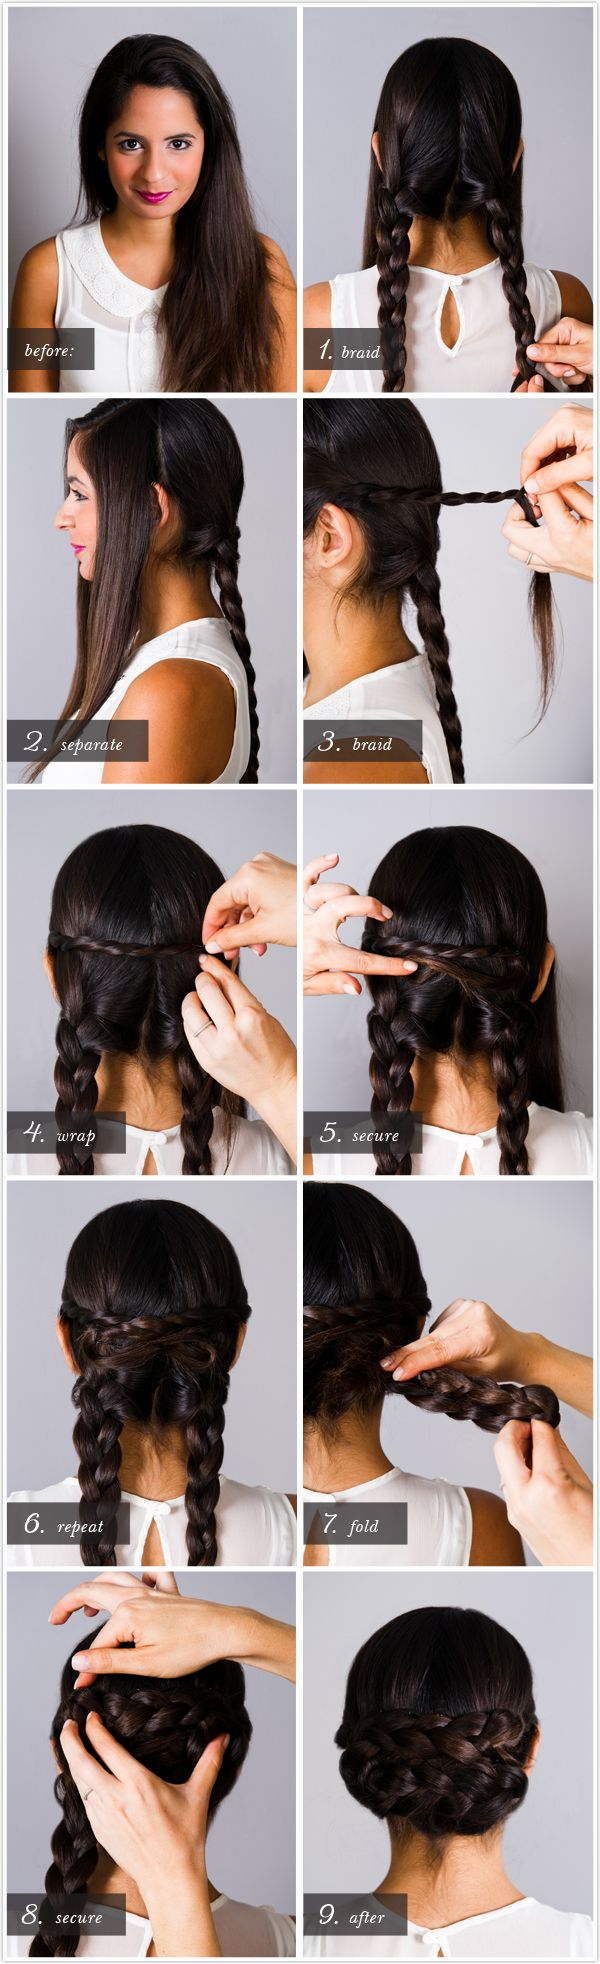 Braided bun: Hair Ideas, Hairstyles, Hair Tutorials, Braids Updo, Long Hair, Makeup, Longhair, Hair Style, Braids Buns